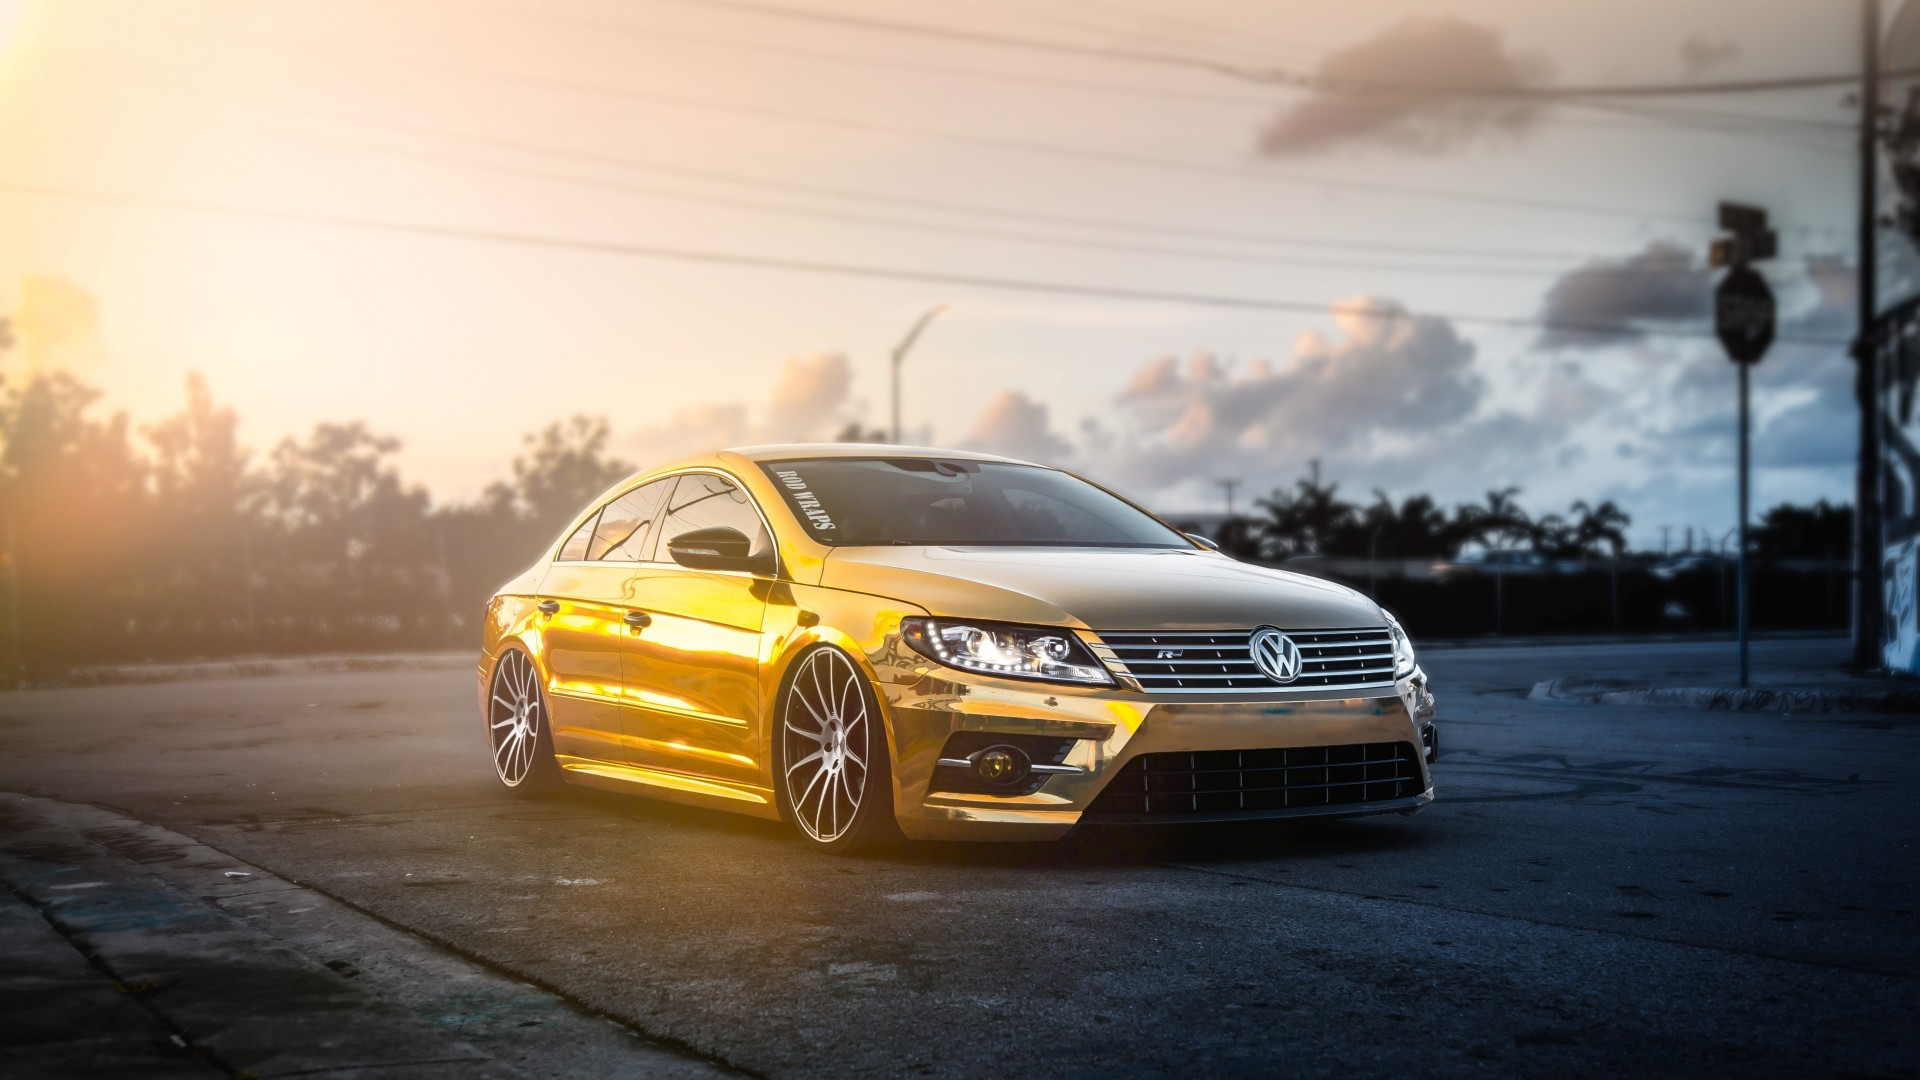 Retro Car Home Wallpaper Gold Volkswagen Passat Car Sun Rays Wallpapers Hd